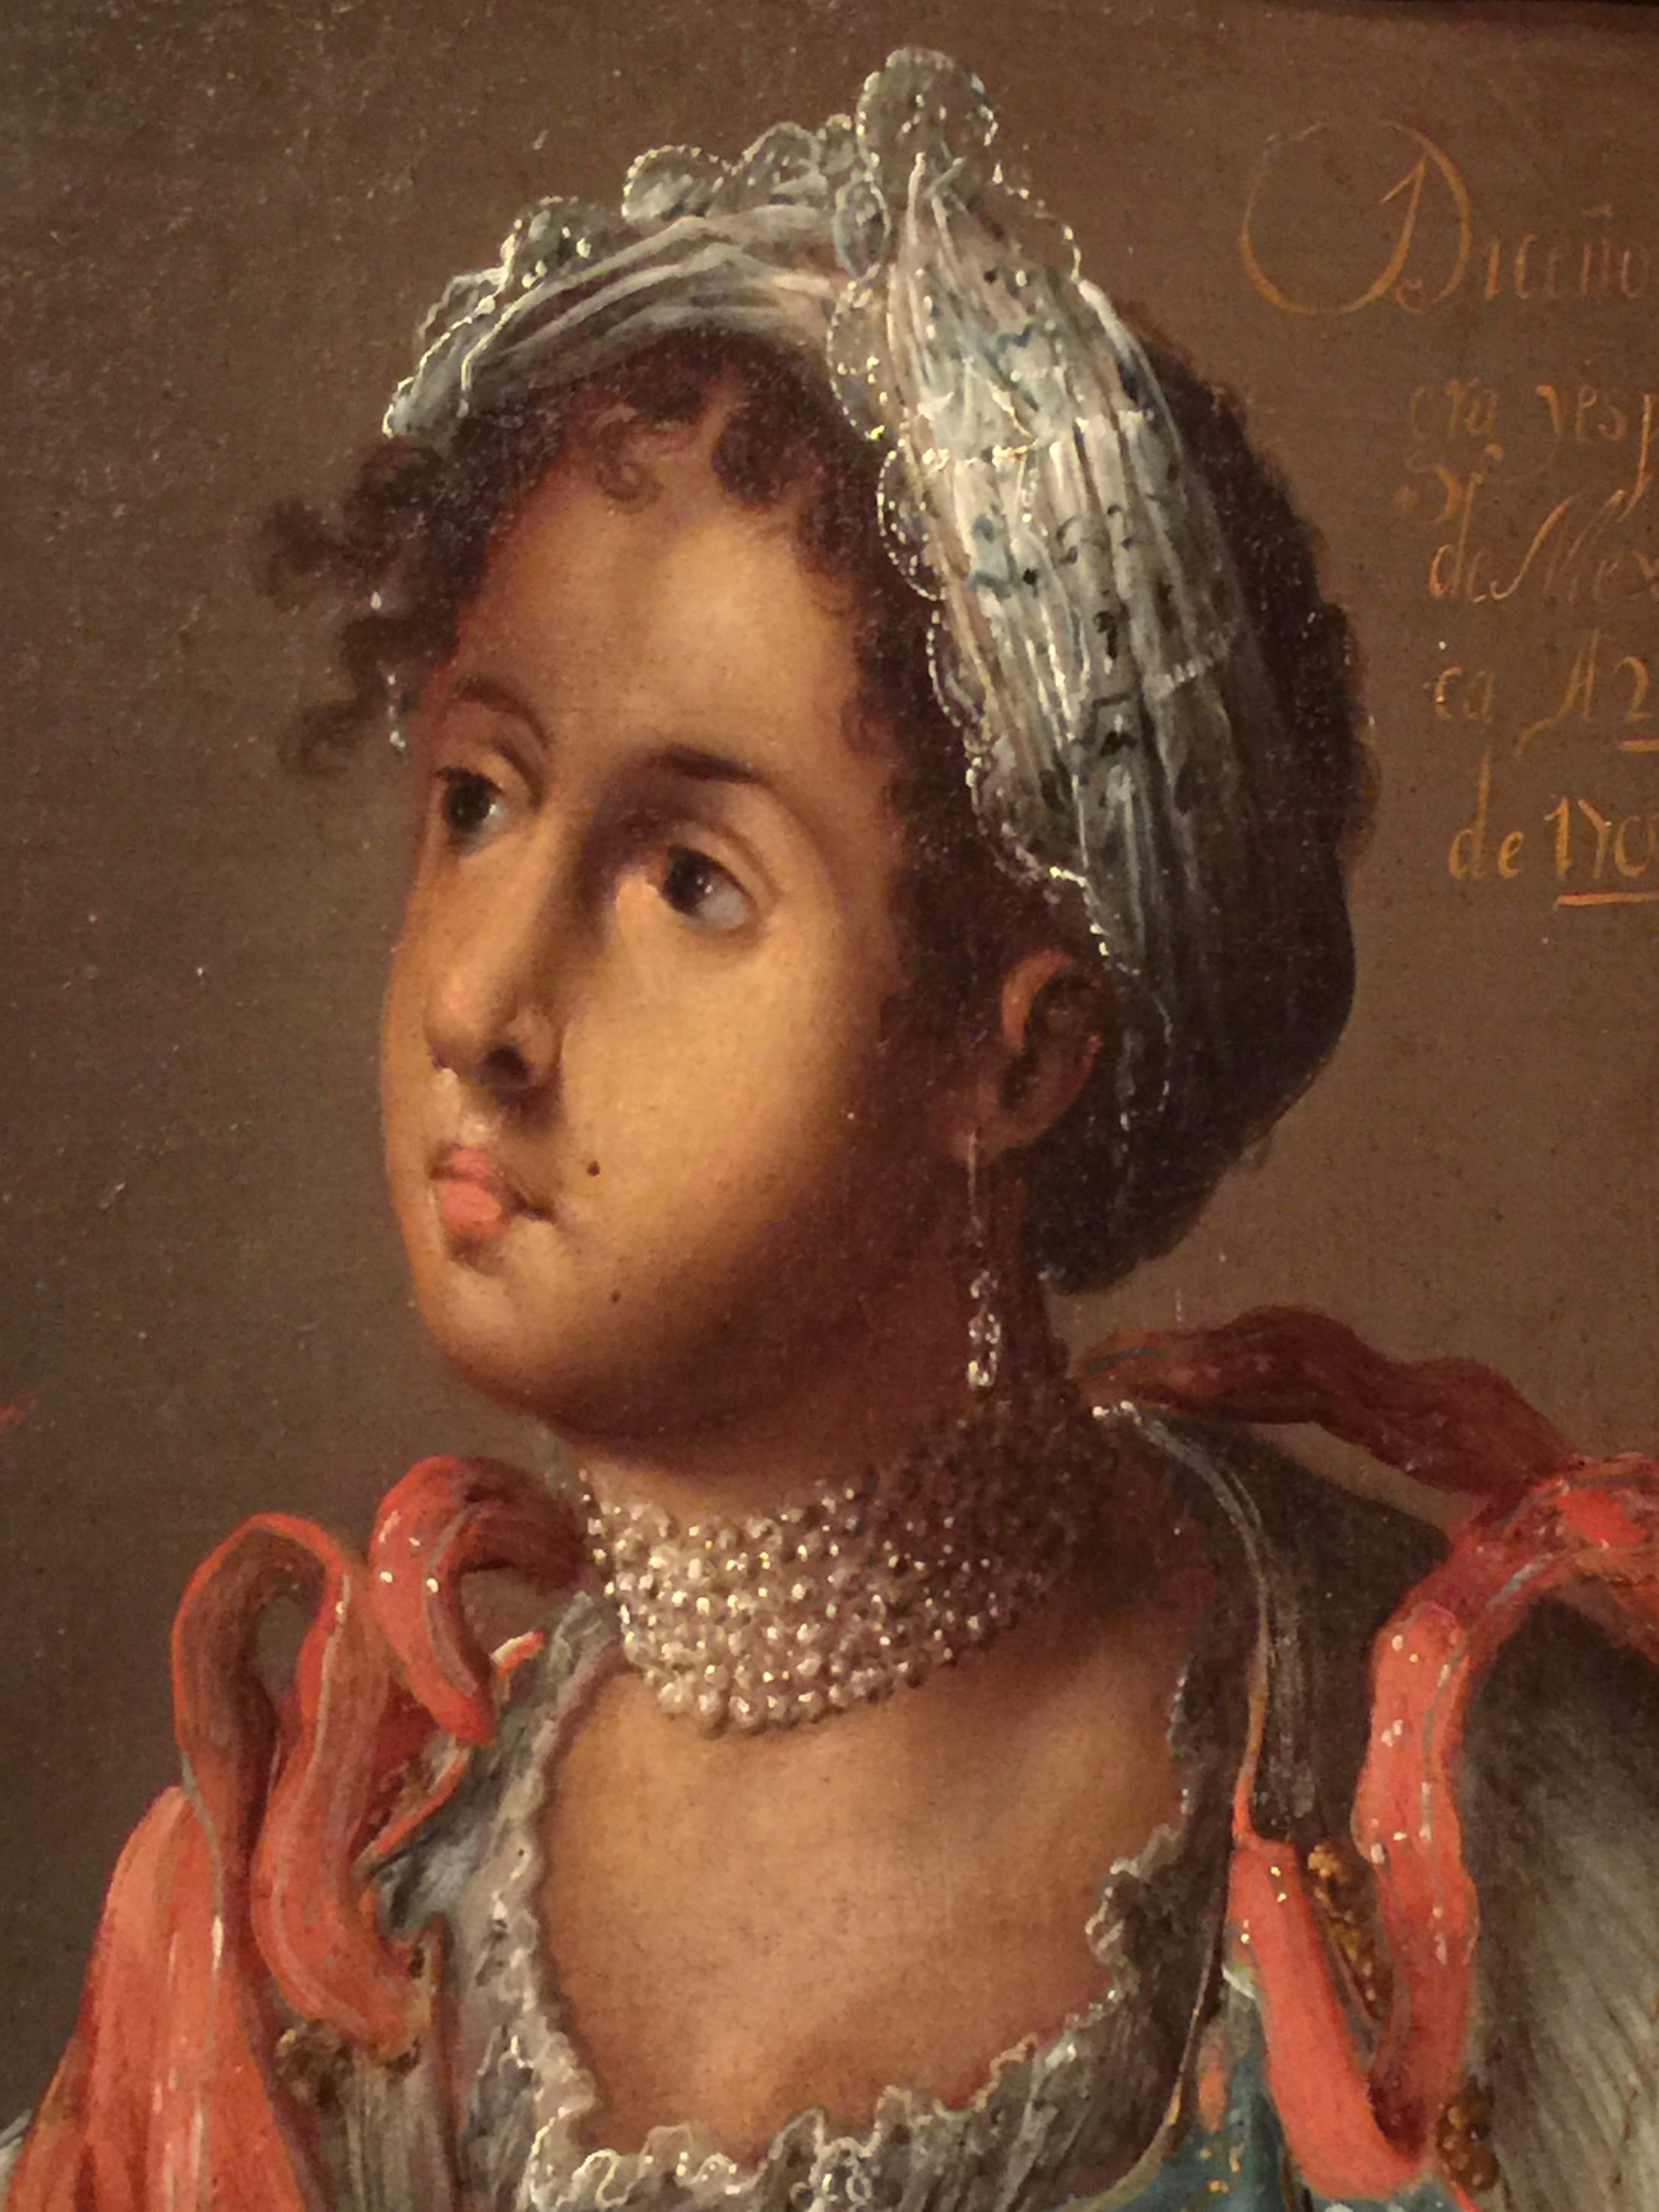 Manuel de Arellano,  Rendering of a Mulatta , Mexico, 1711, oil paint on canvas (detail). Collection of Frederick and Jan Mayer, TL-24502. (Photo: David Hughes)